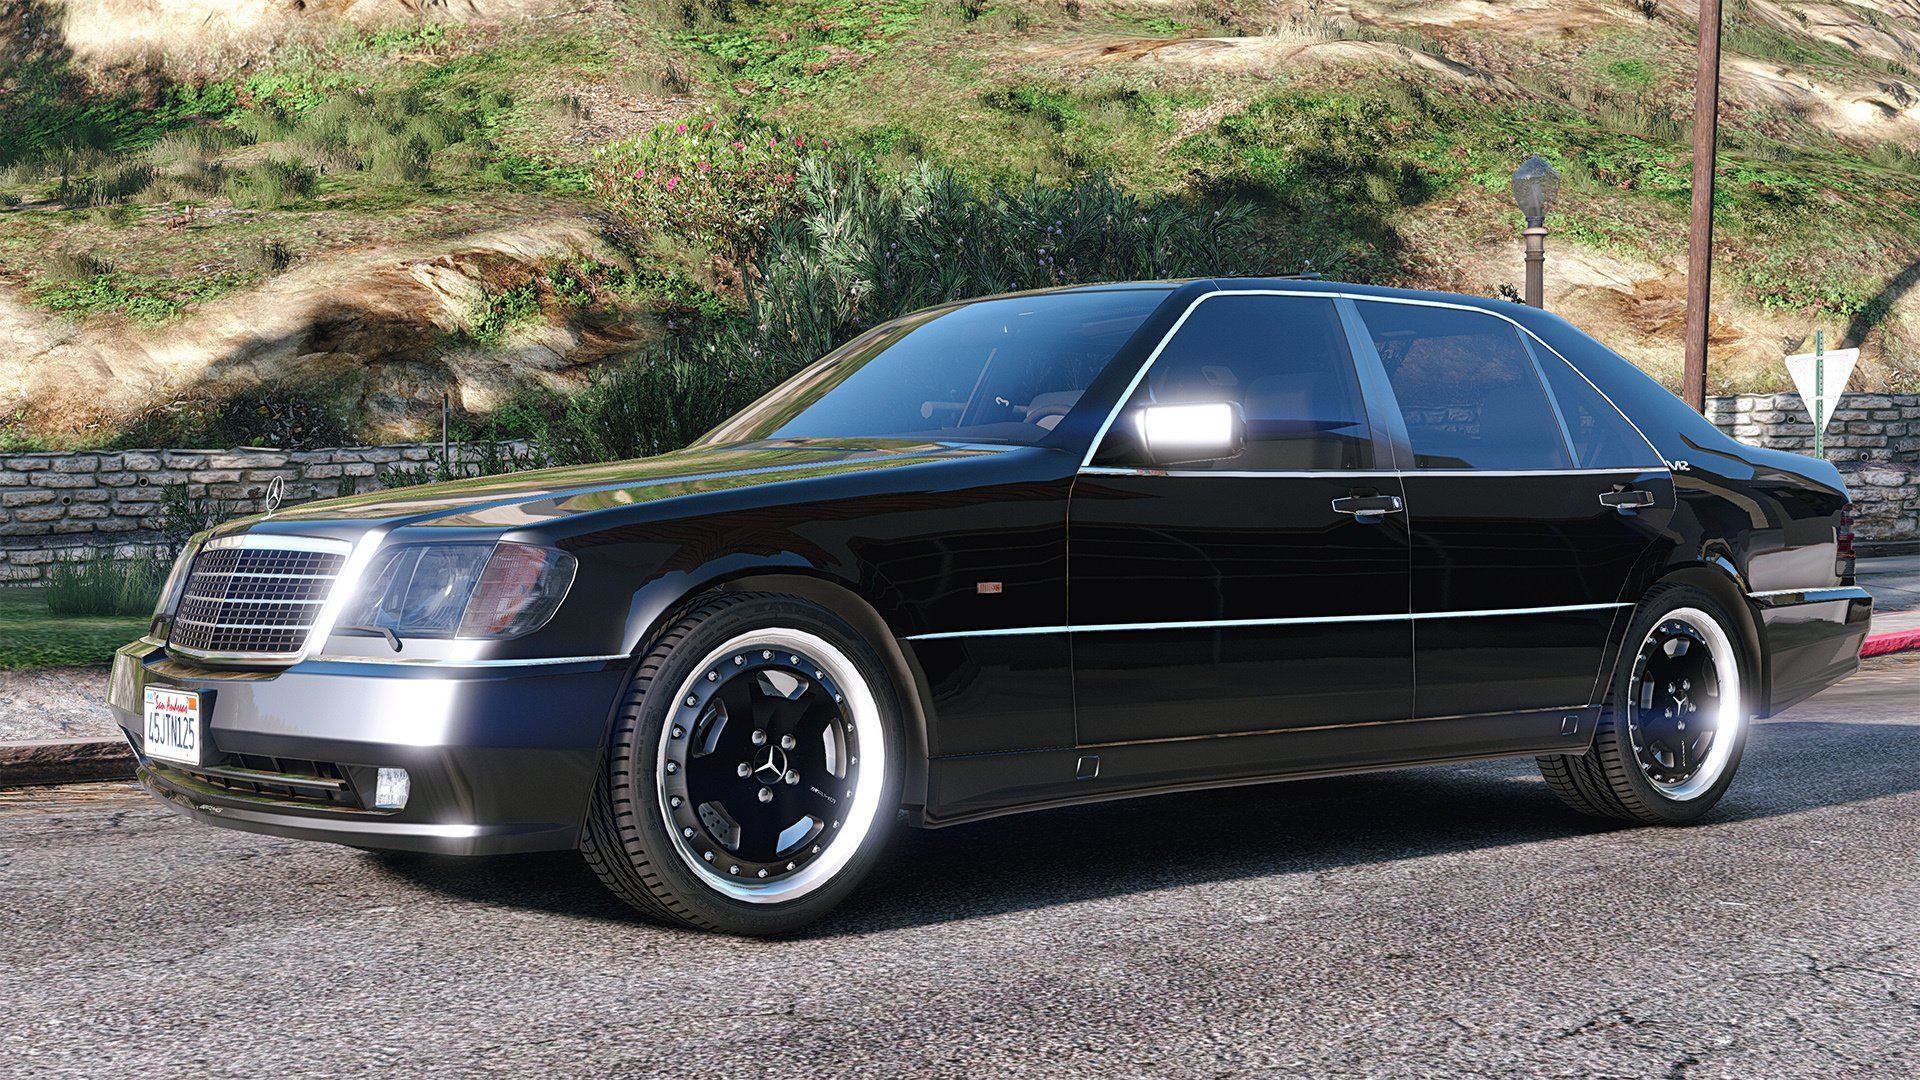 Mercedes benz w140 amg add on replace gta5 for Mercedes benz w140